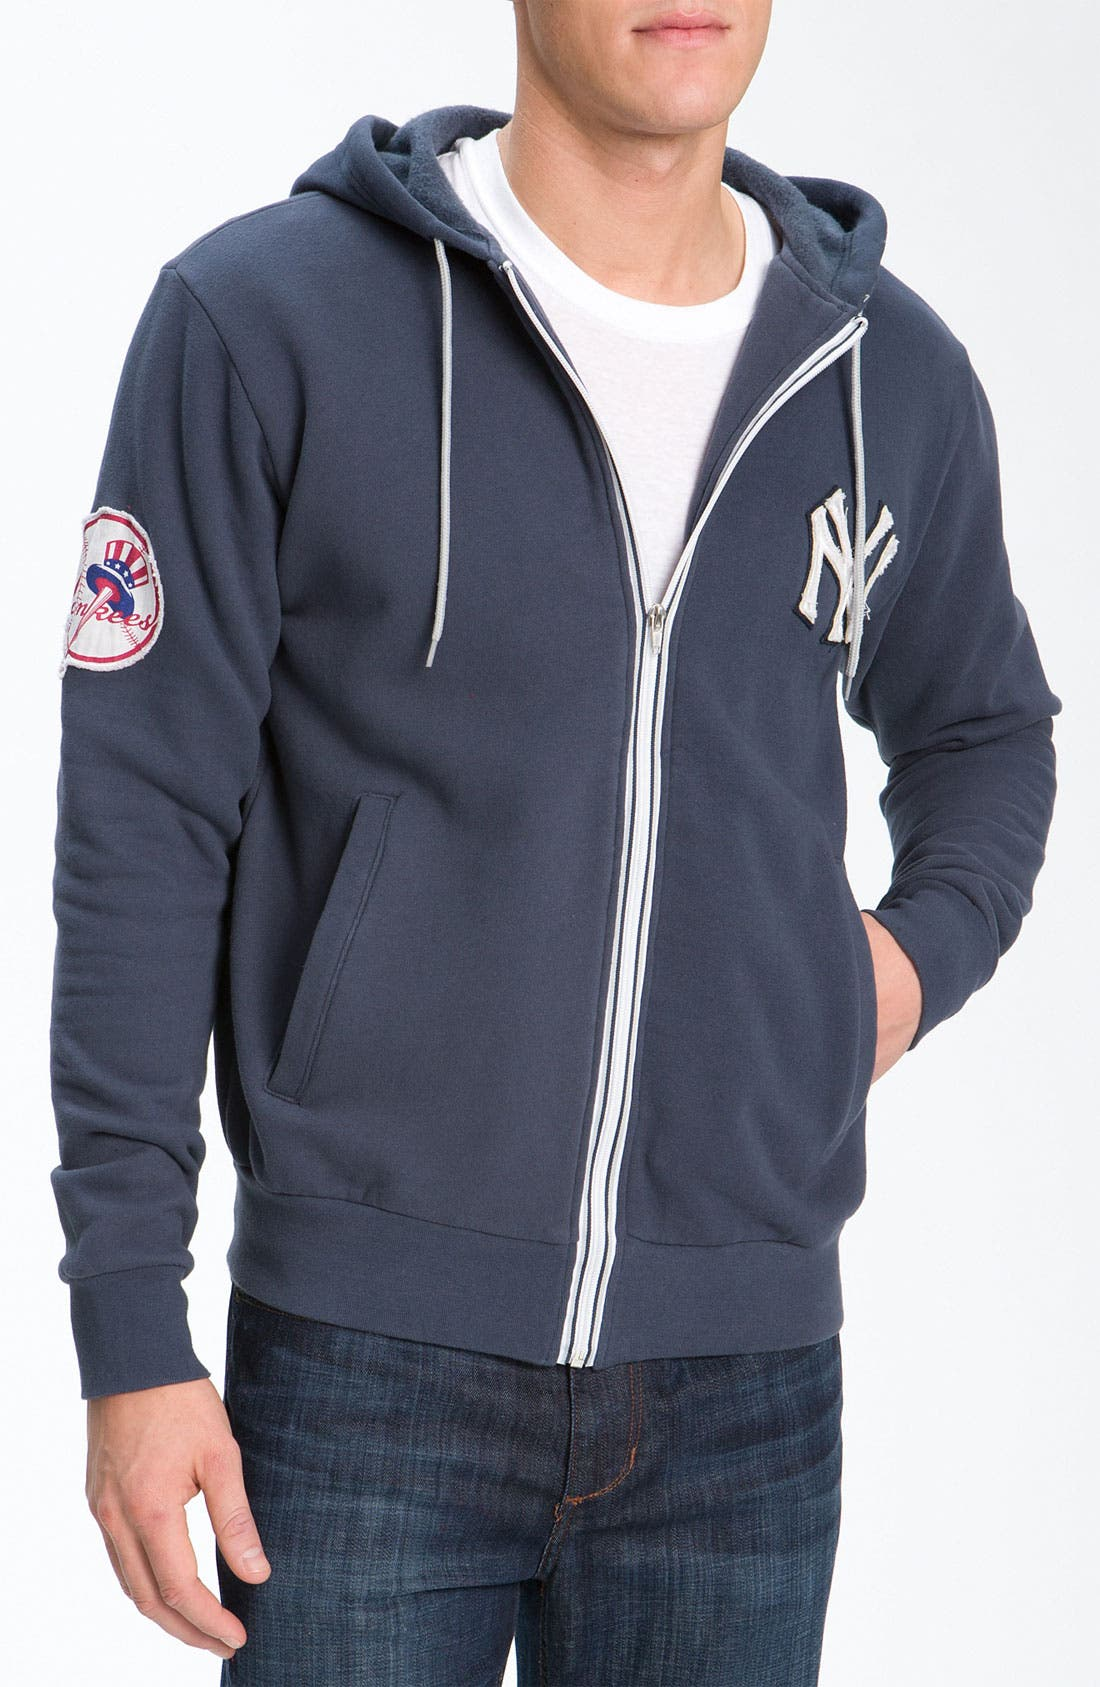 Main Image - Wright & Ditson 'New York Yankees' Hoodie